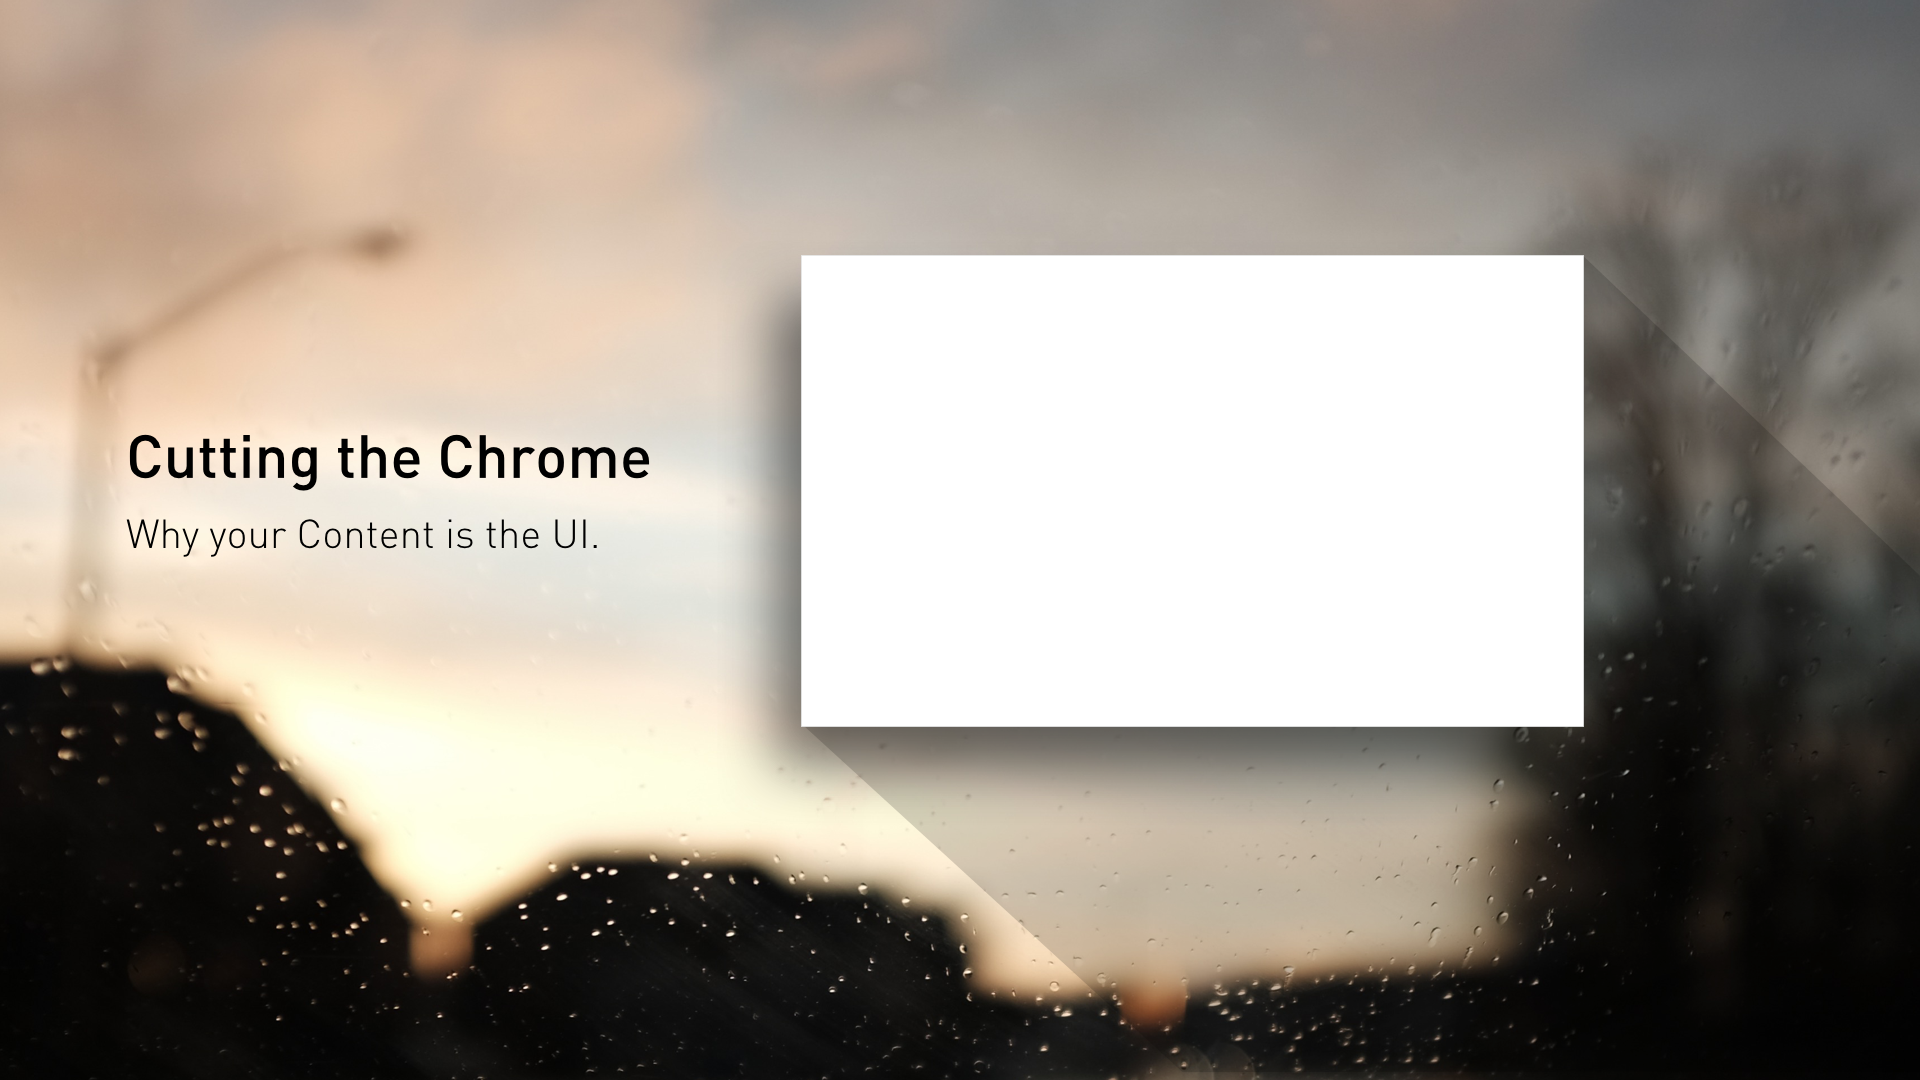 Cutting the Chrome: Why your Content is the UI, by Sanjiv Sirpal